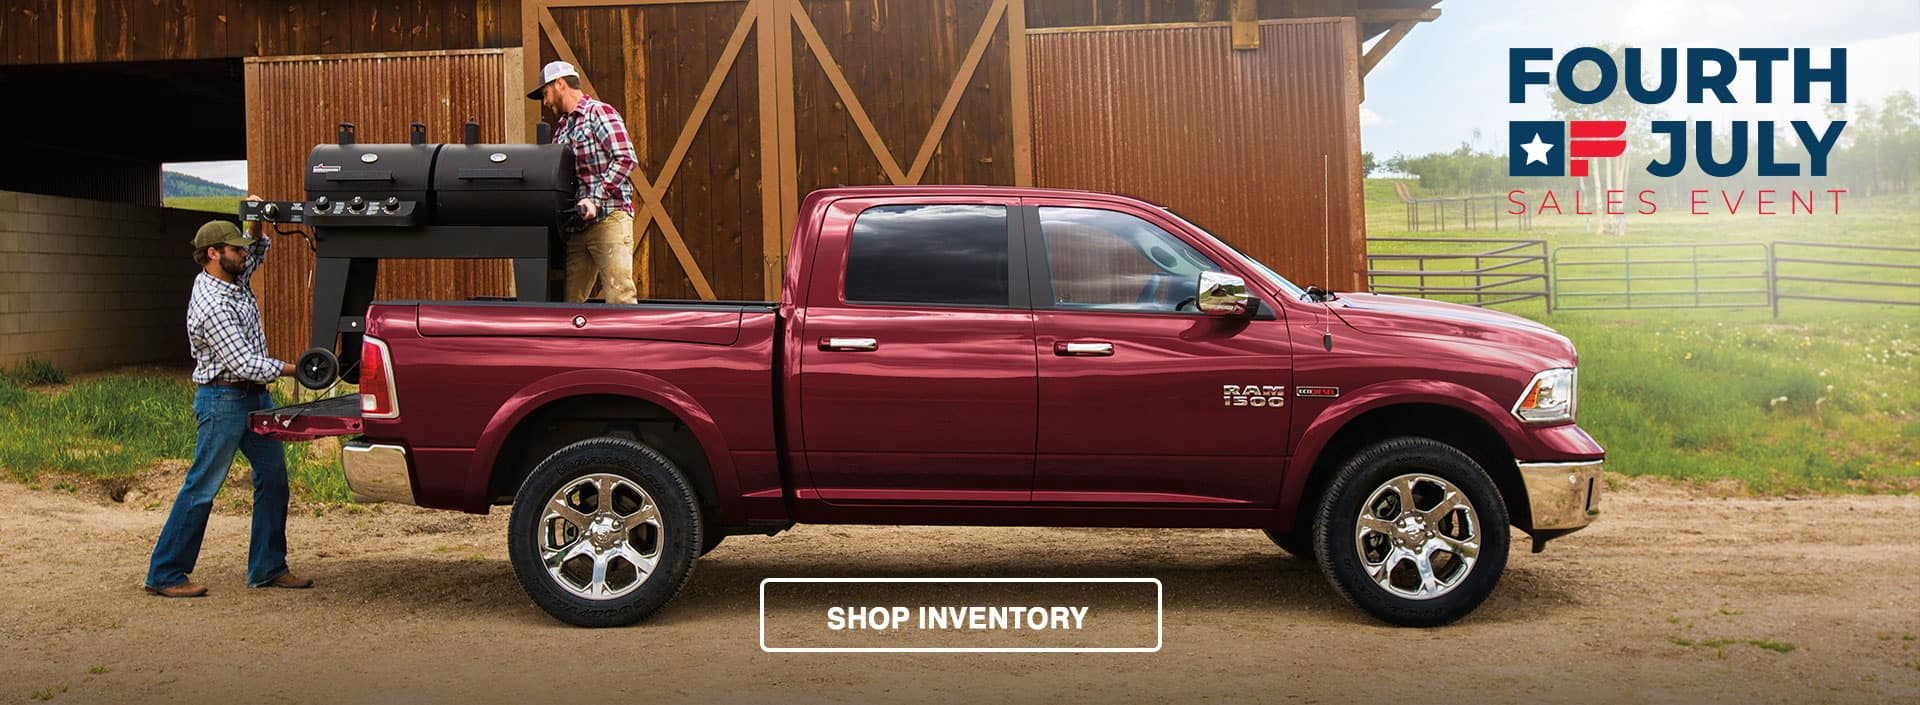 ram 4th of july sales event